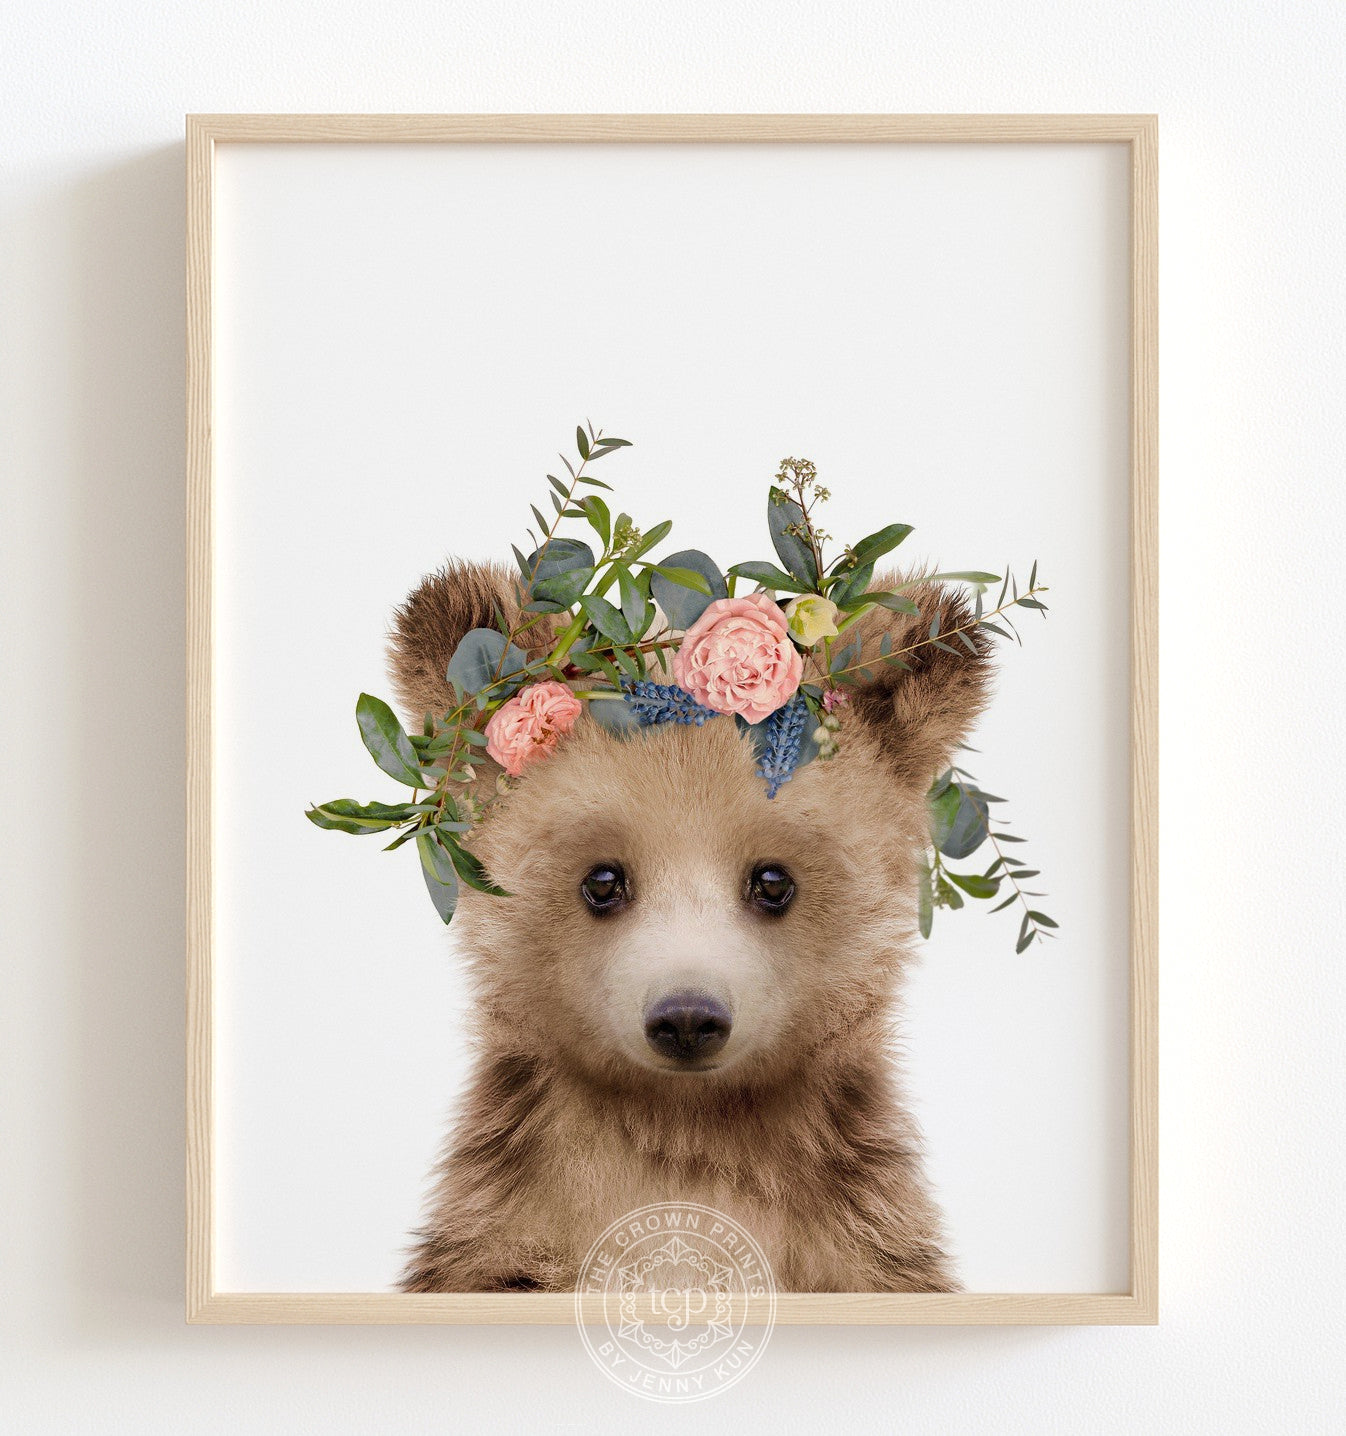 Baby Grizzly Bear with Flower Crown Printable Art